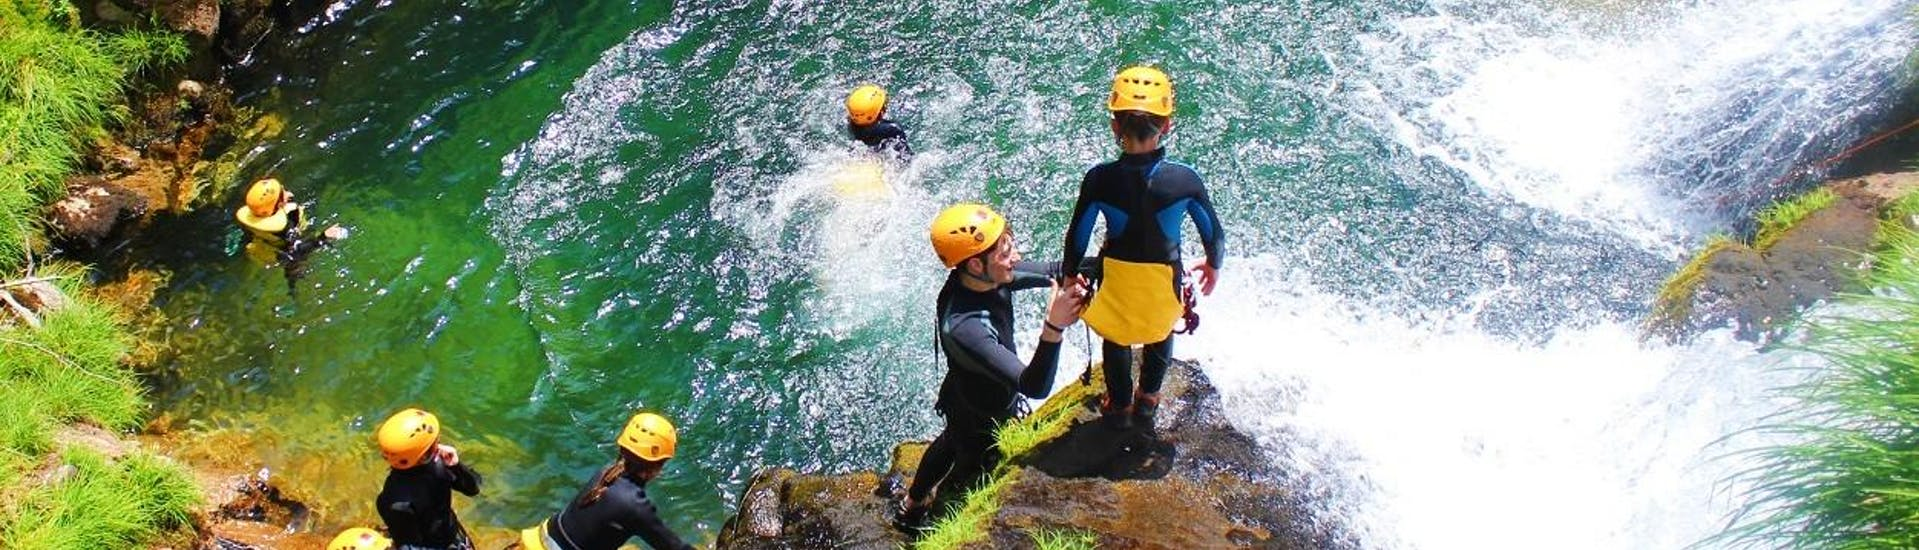 A guide is helping a young boy to prepare for a jump during the Family Canyoning in Ribeira de Vessadas in Arouca Geopark with Clube do Paiva.